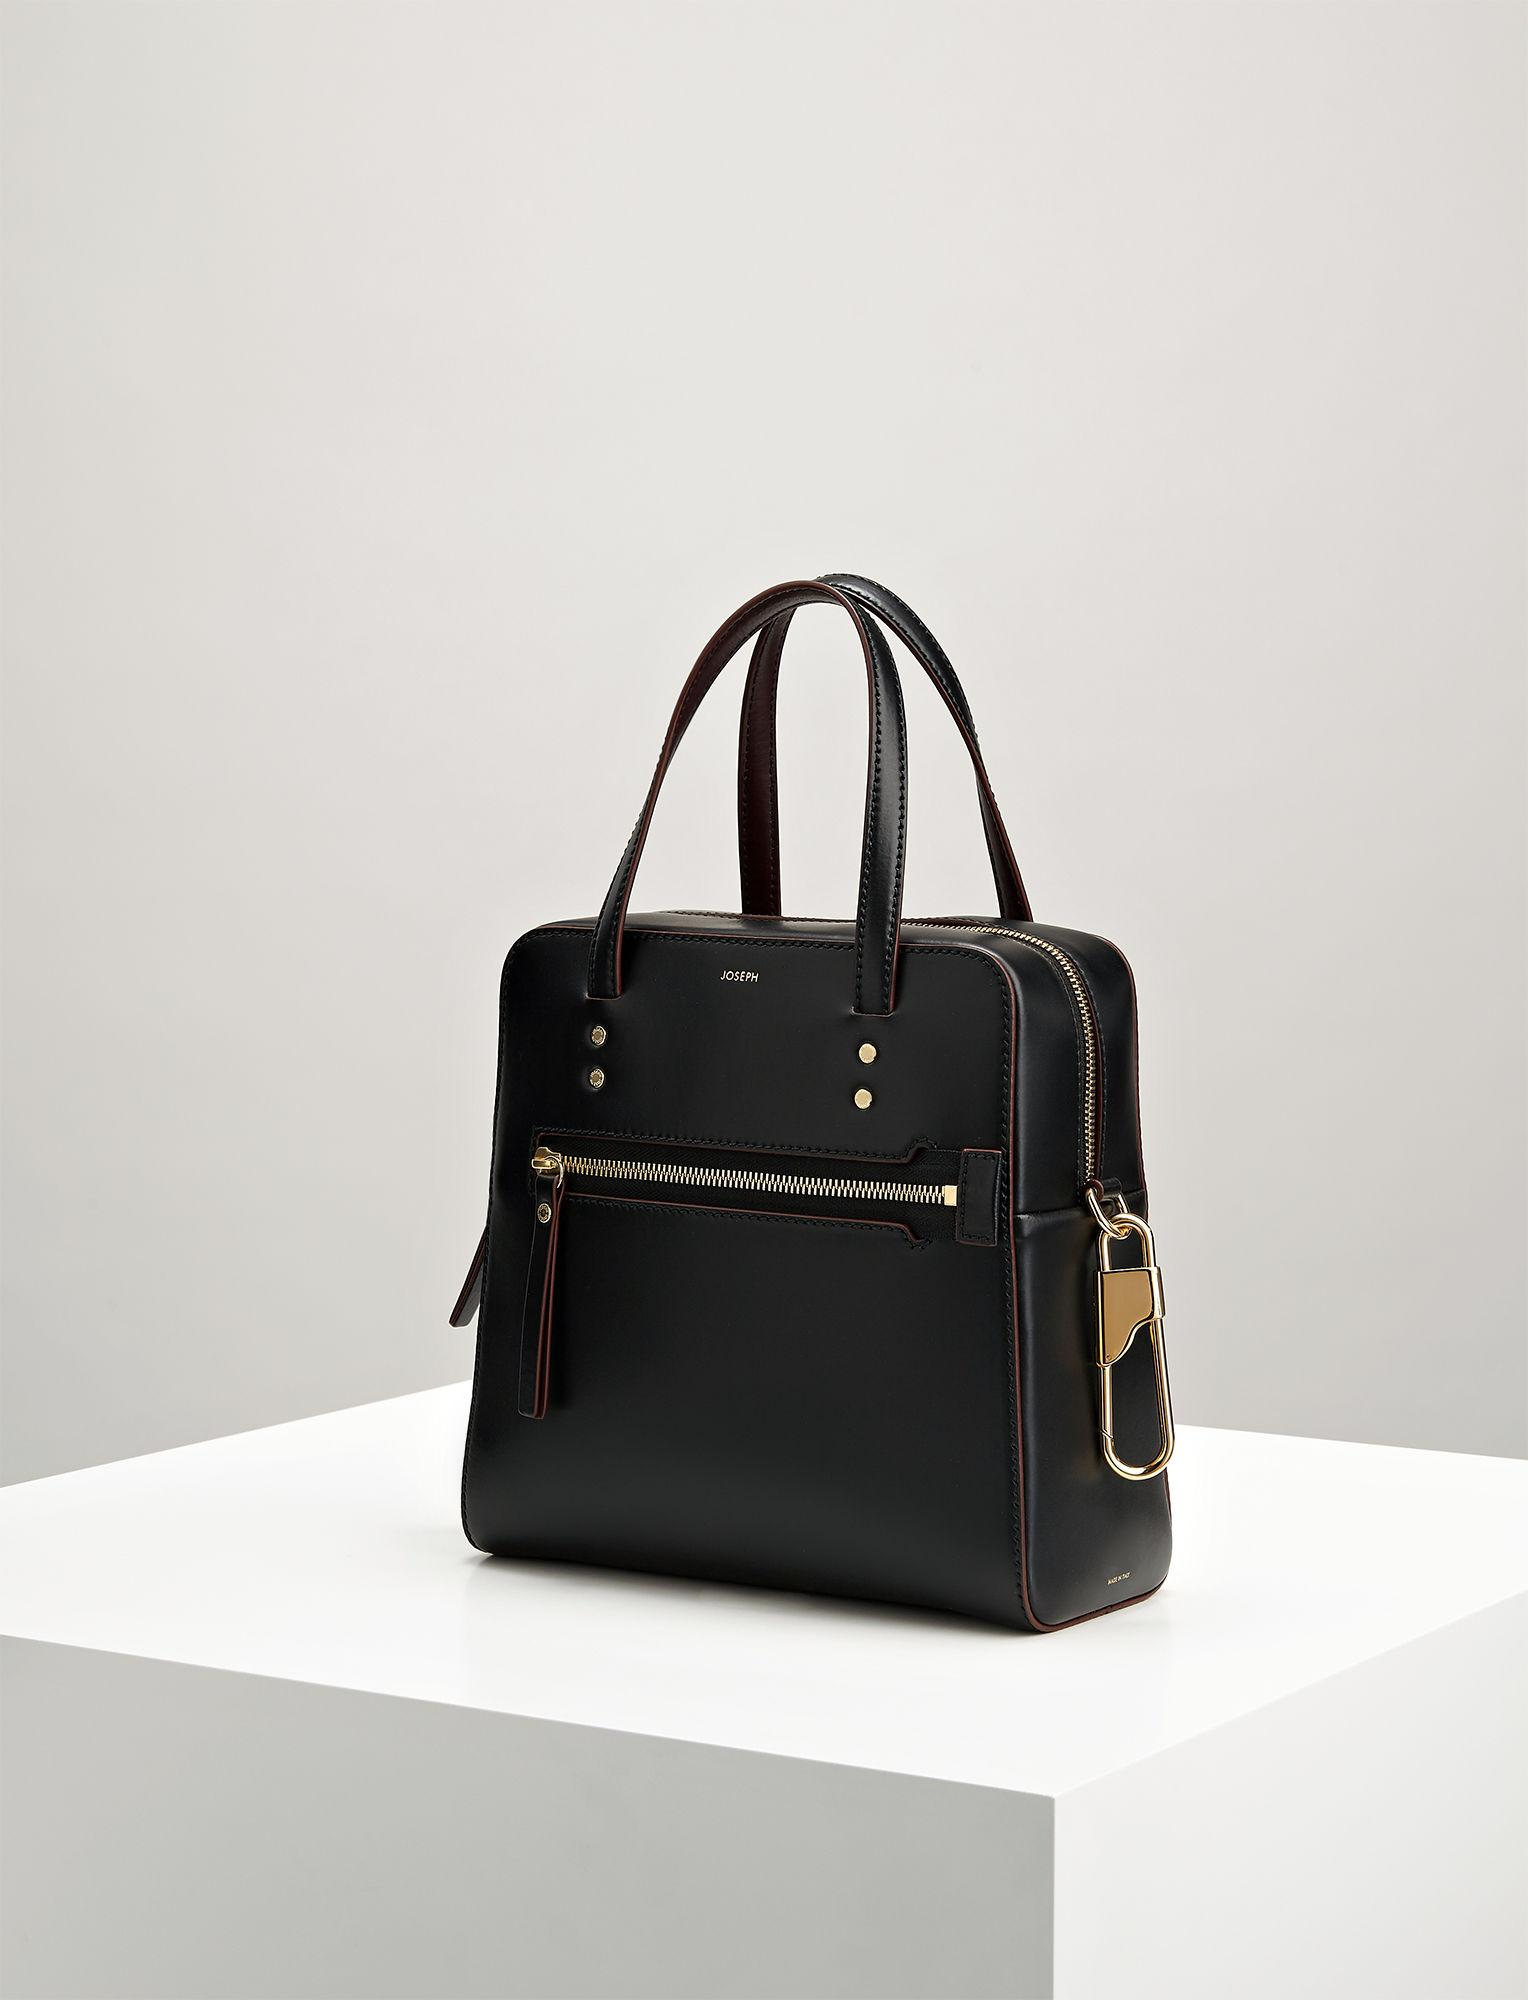 Lyst - Joseph Leather Ryder 25 Bag in Black 9a2a64249b5d4